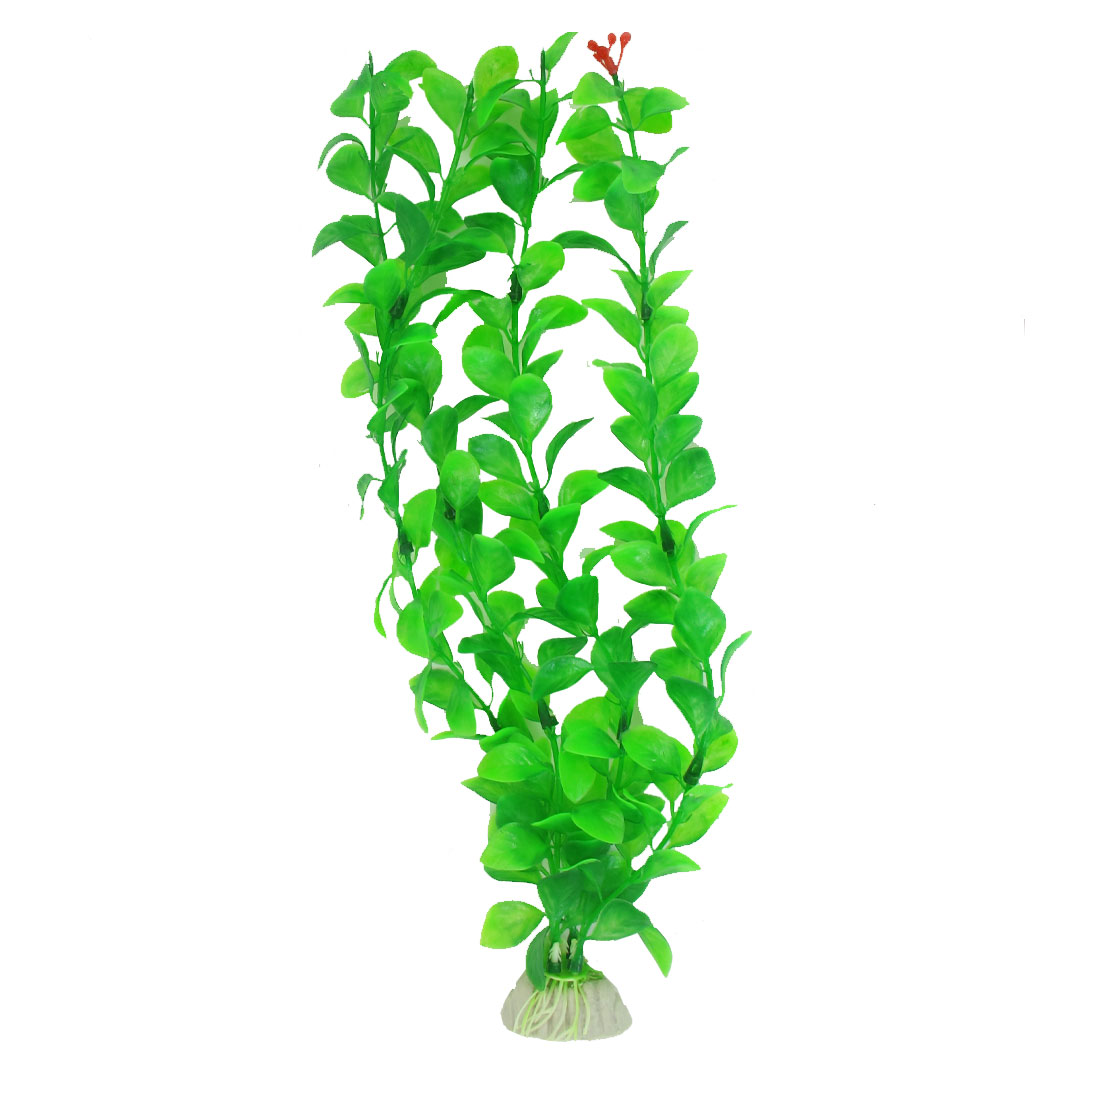 "13"" High Artificial Plastic Green Underwater Plant Grass for Fish Tank Aquarium"